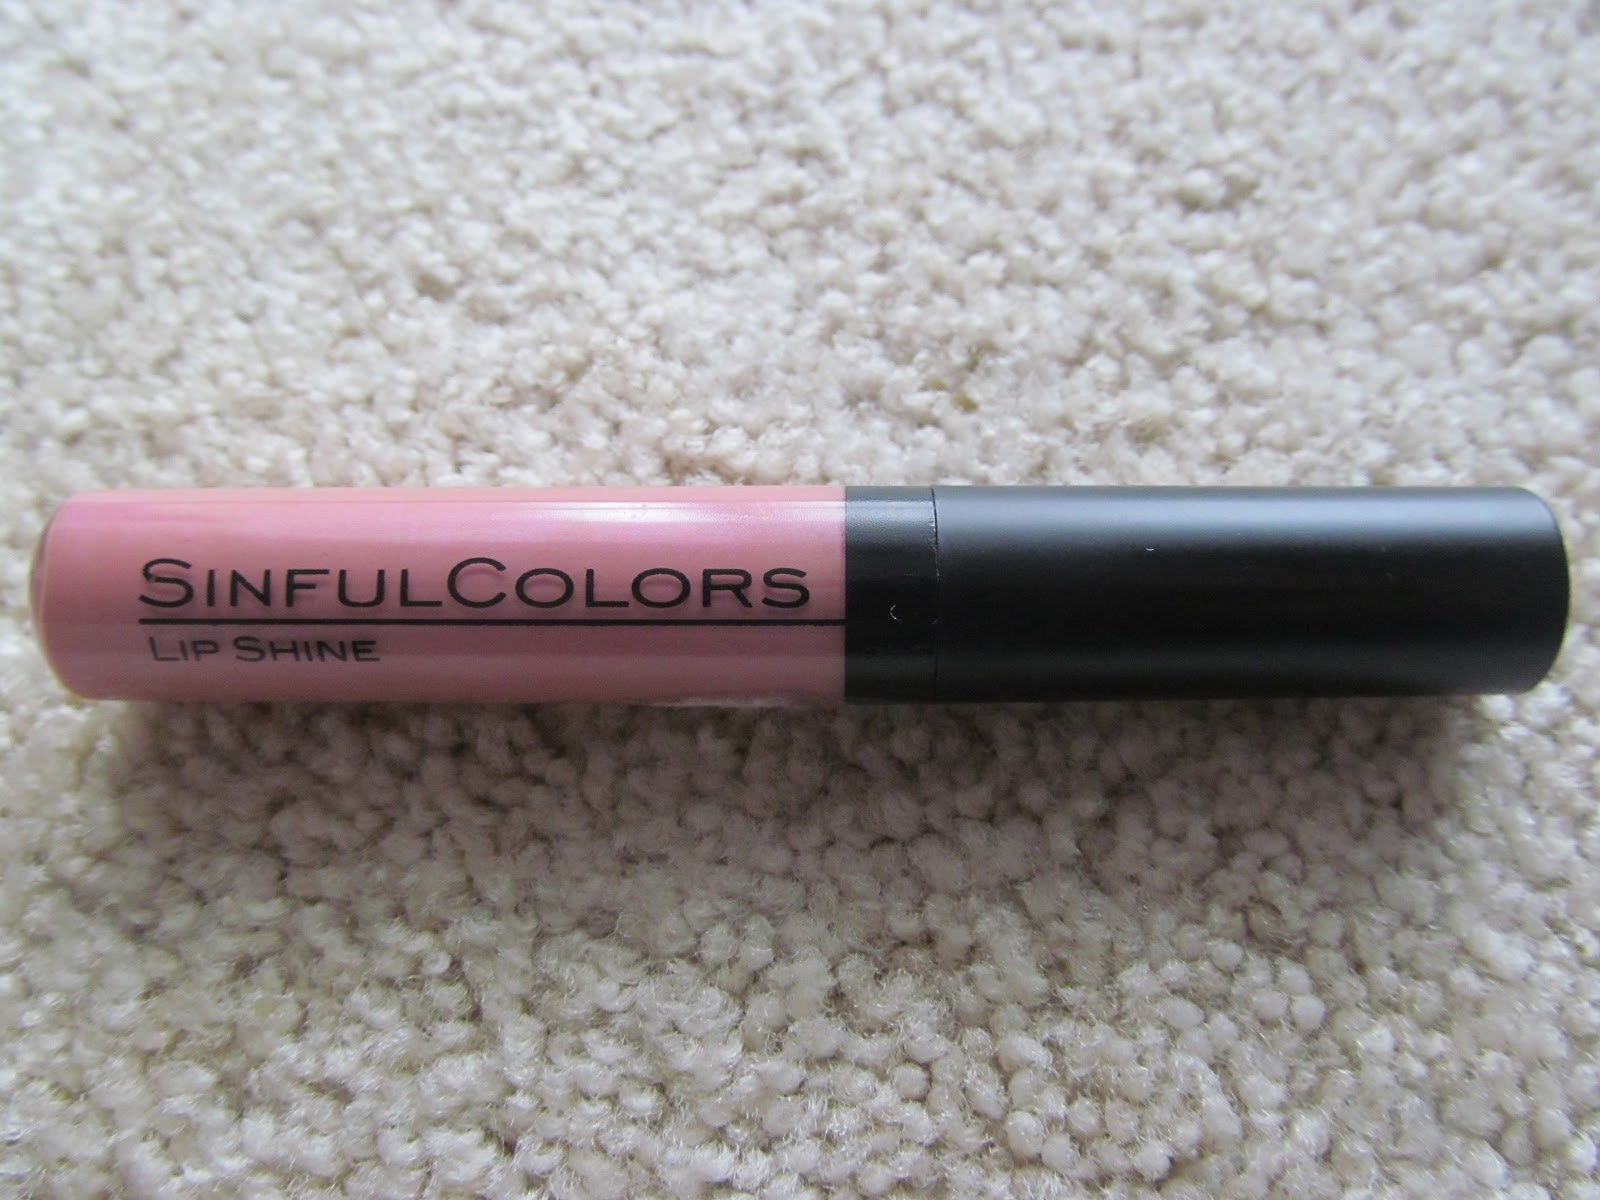 Sinful colors coupons 2018